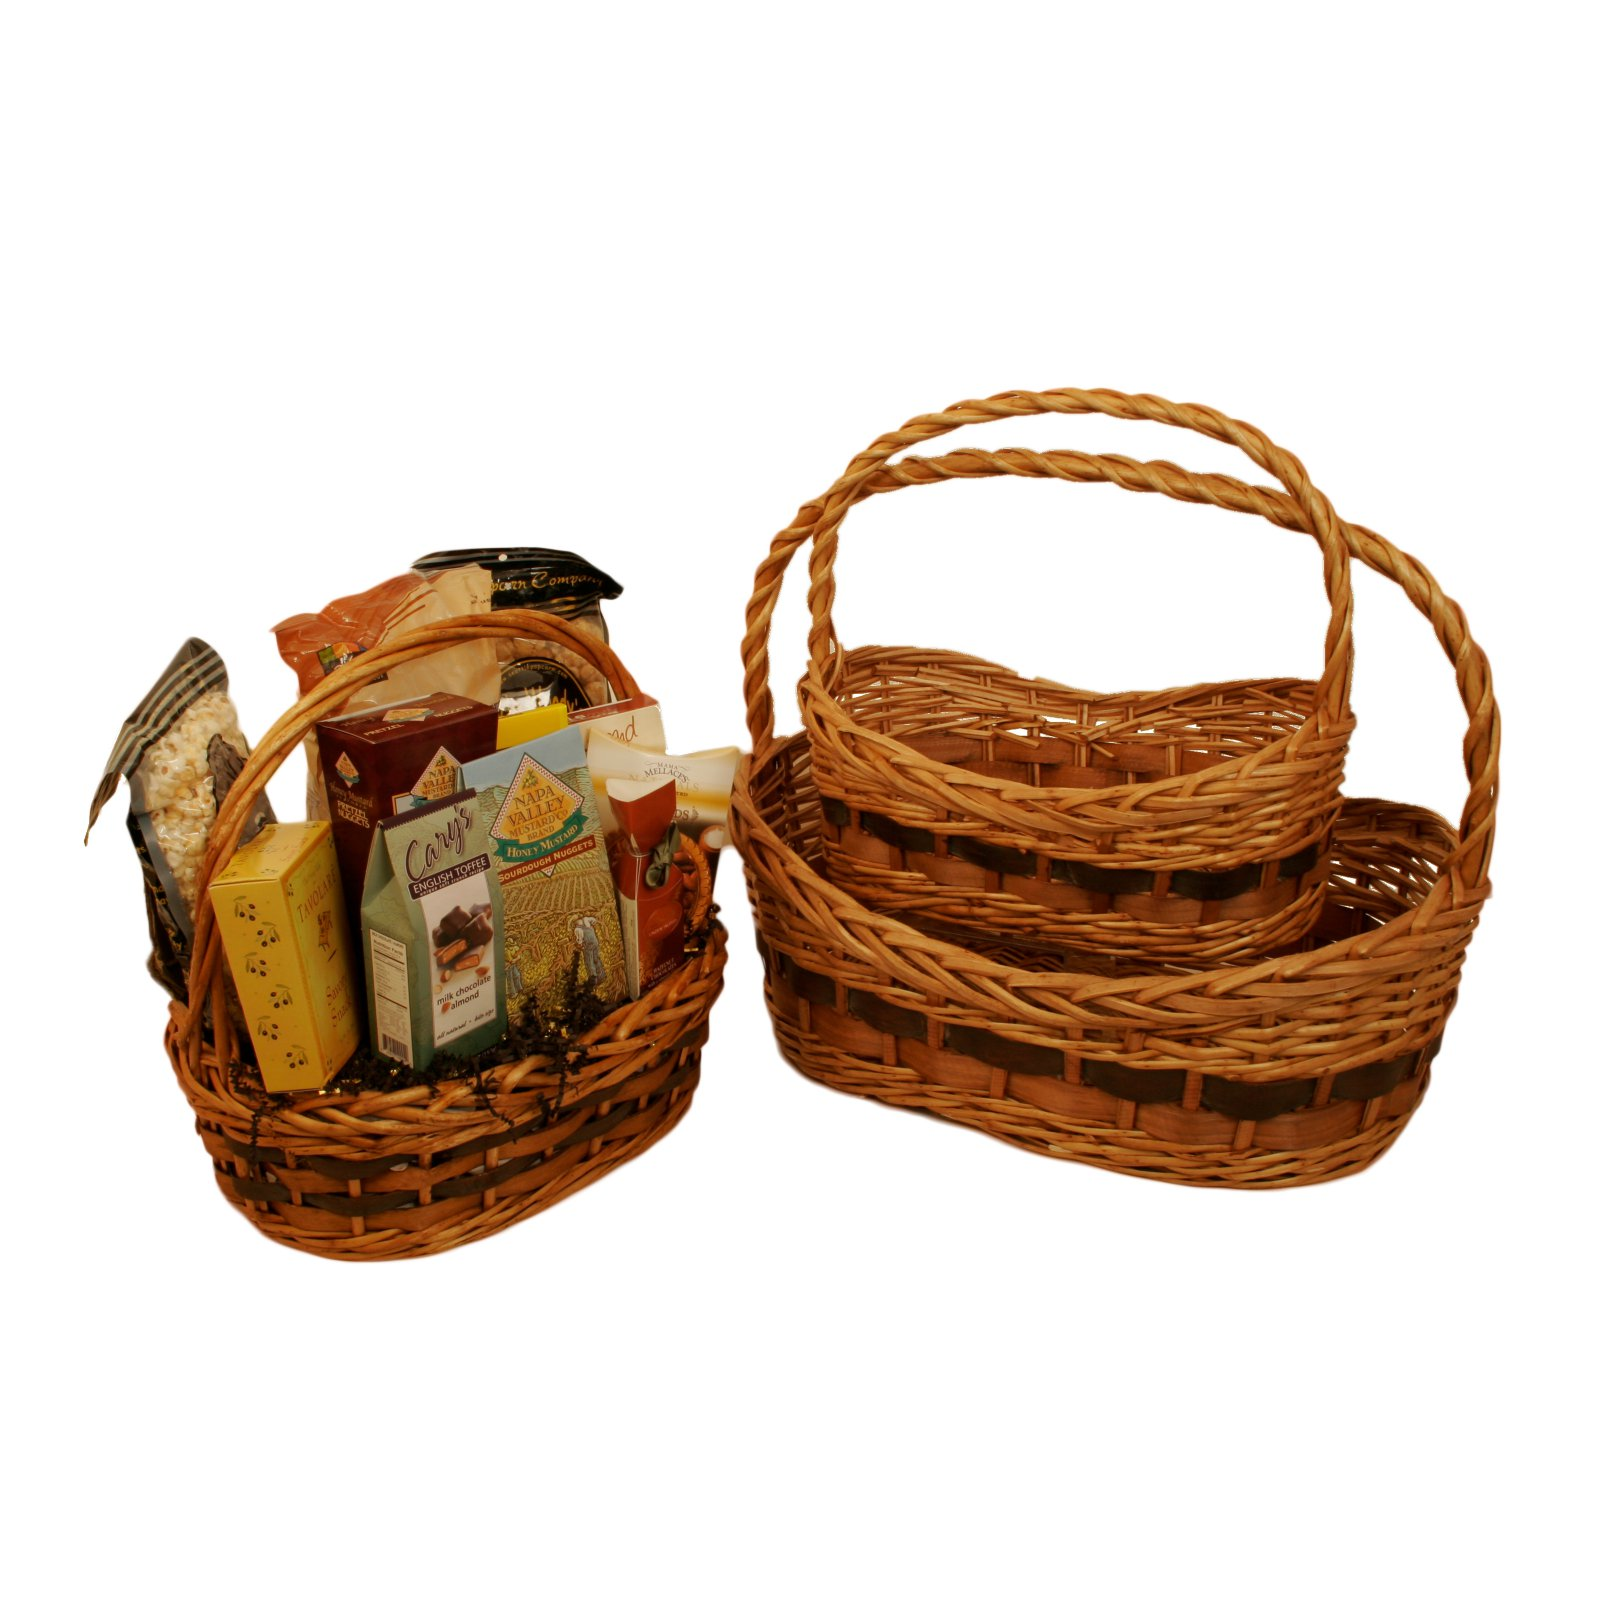 Wald Import Tuscana Decorative Basket with Wood Chip Handle - Set of 3